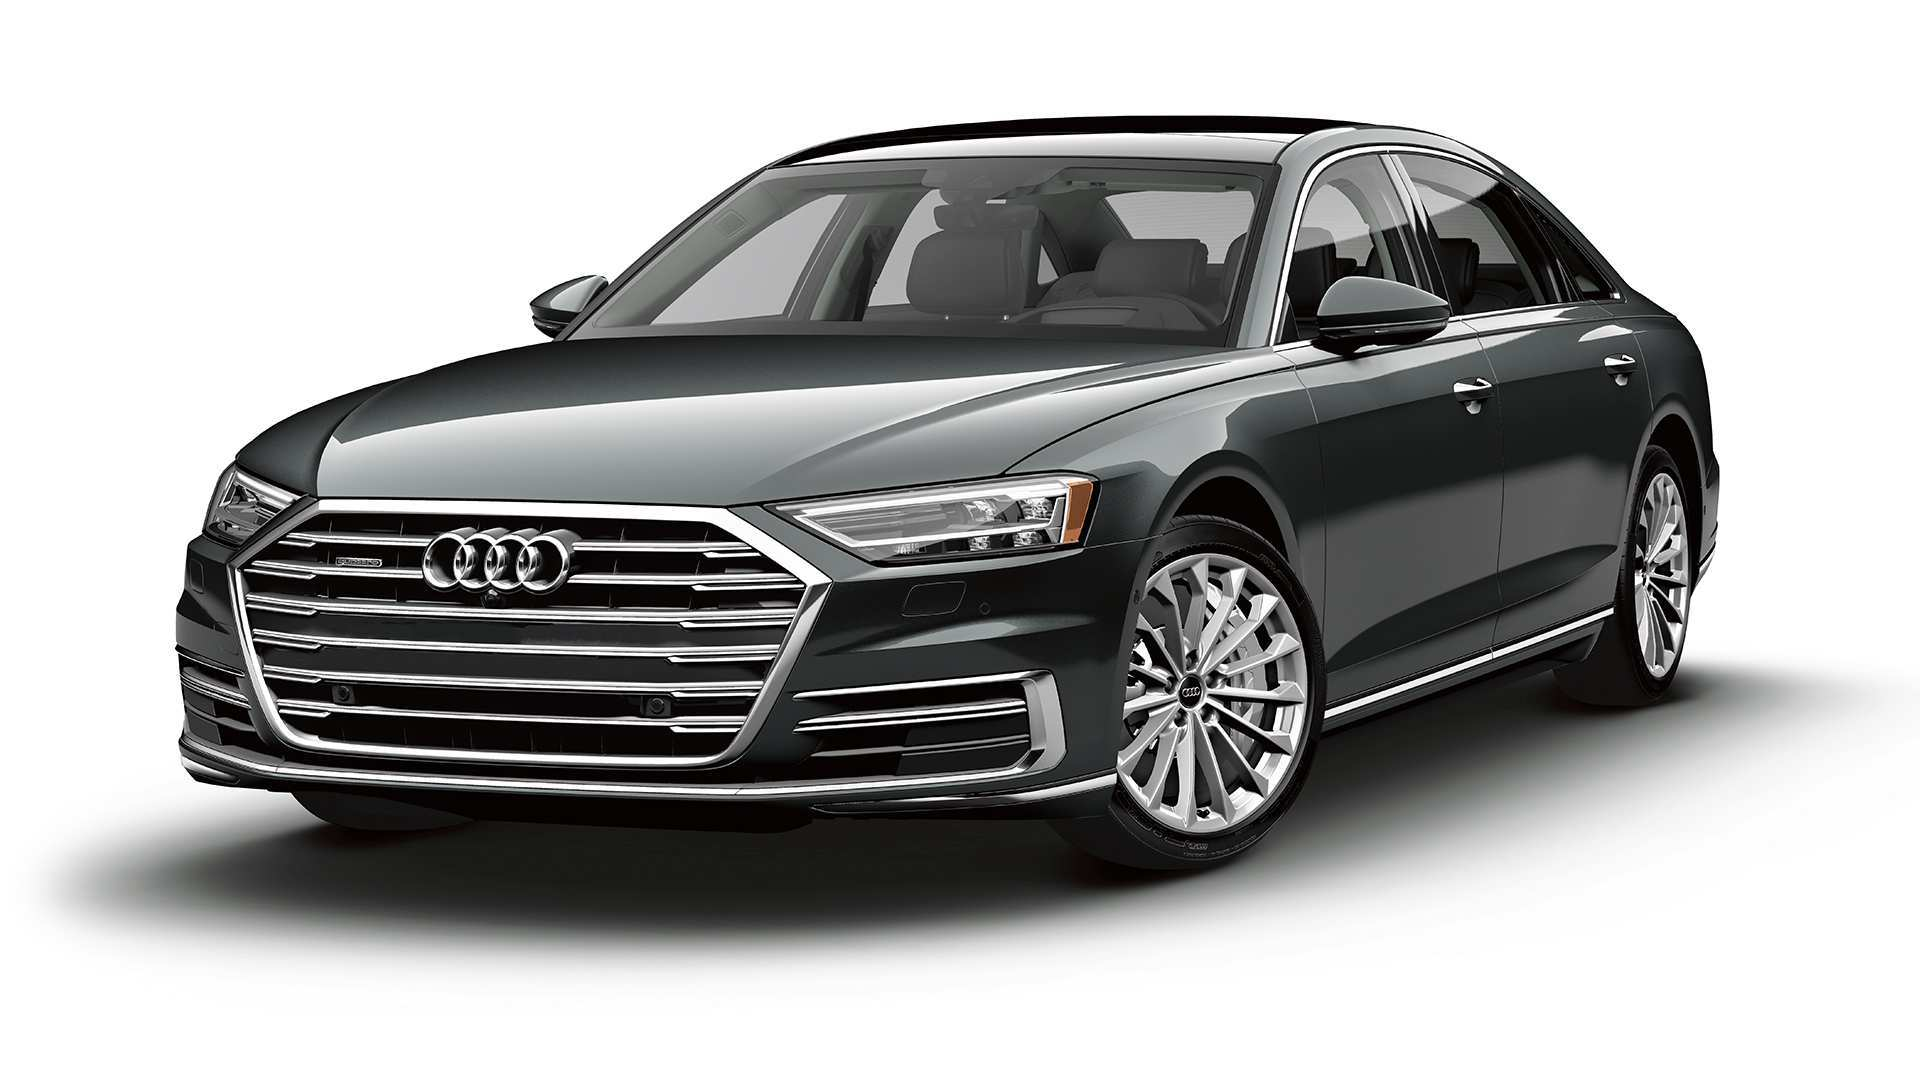 78 The Best 2019 Audi A8 Photos Performance And New Engine